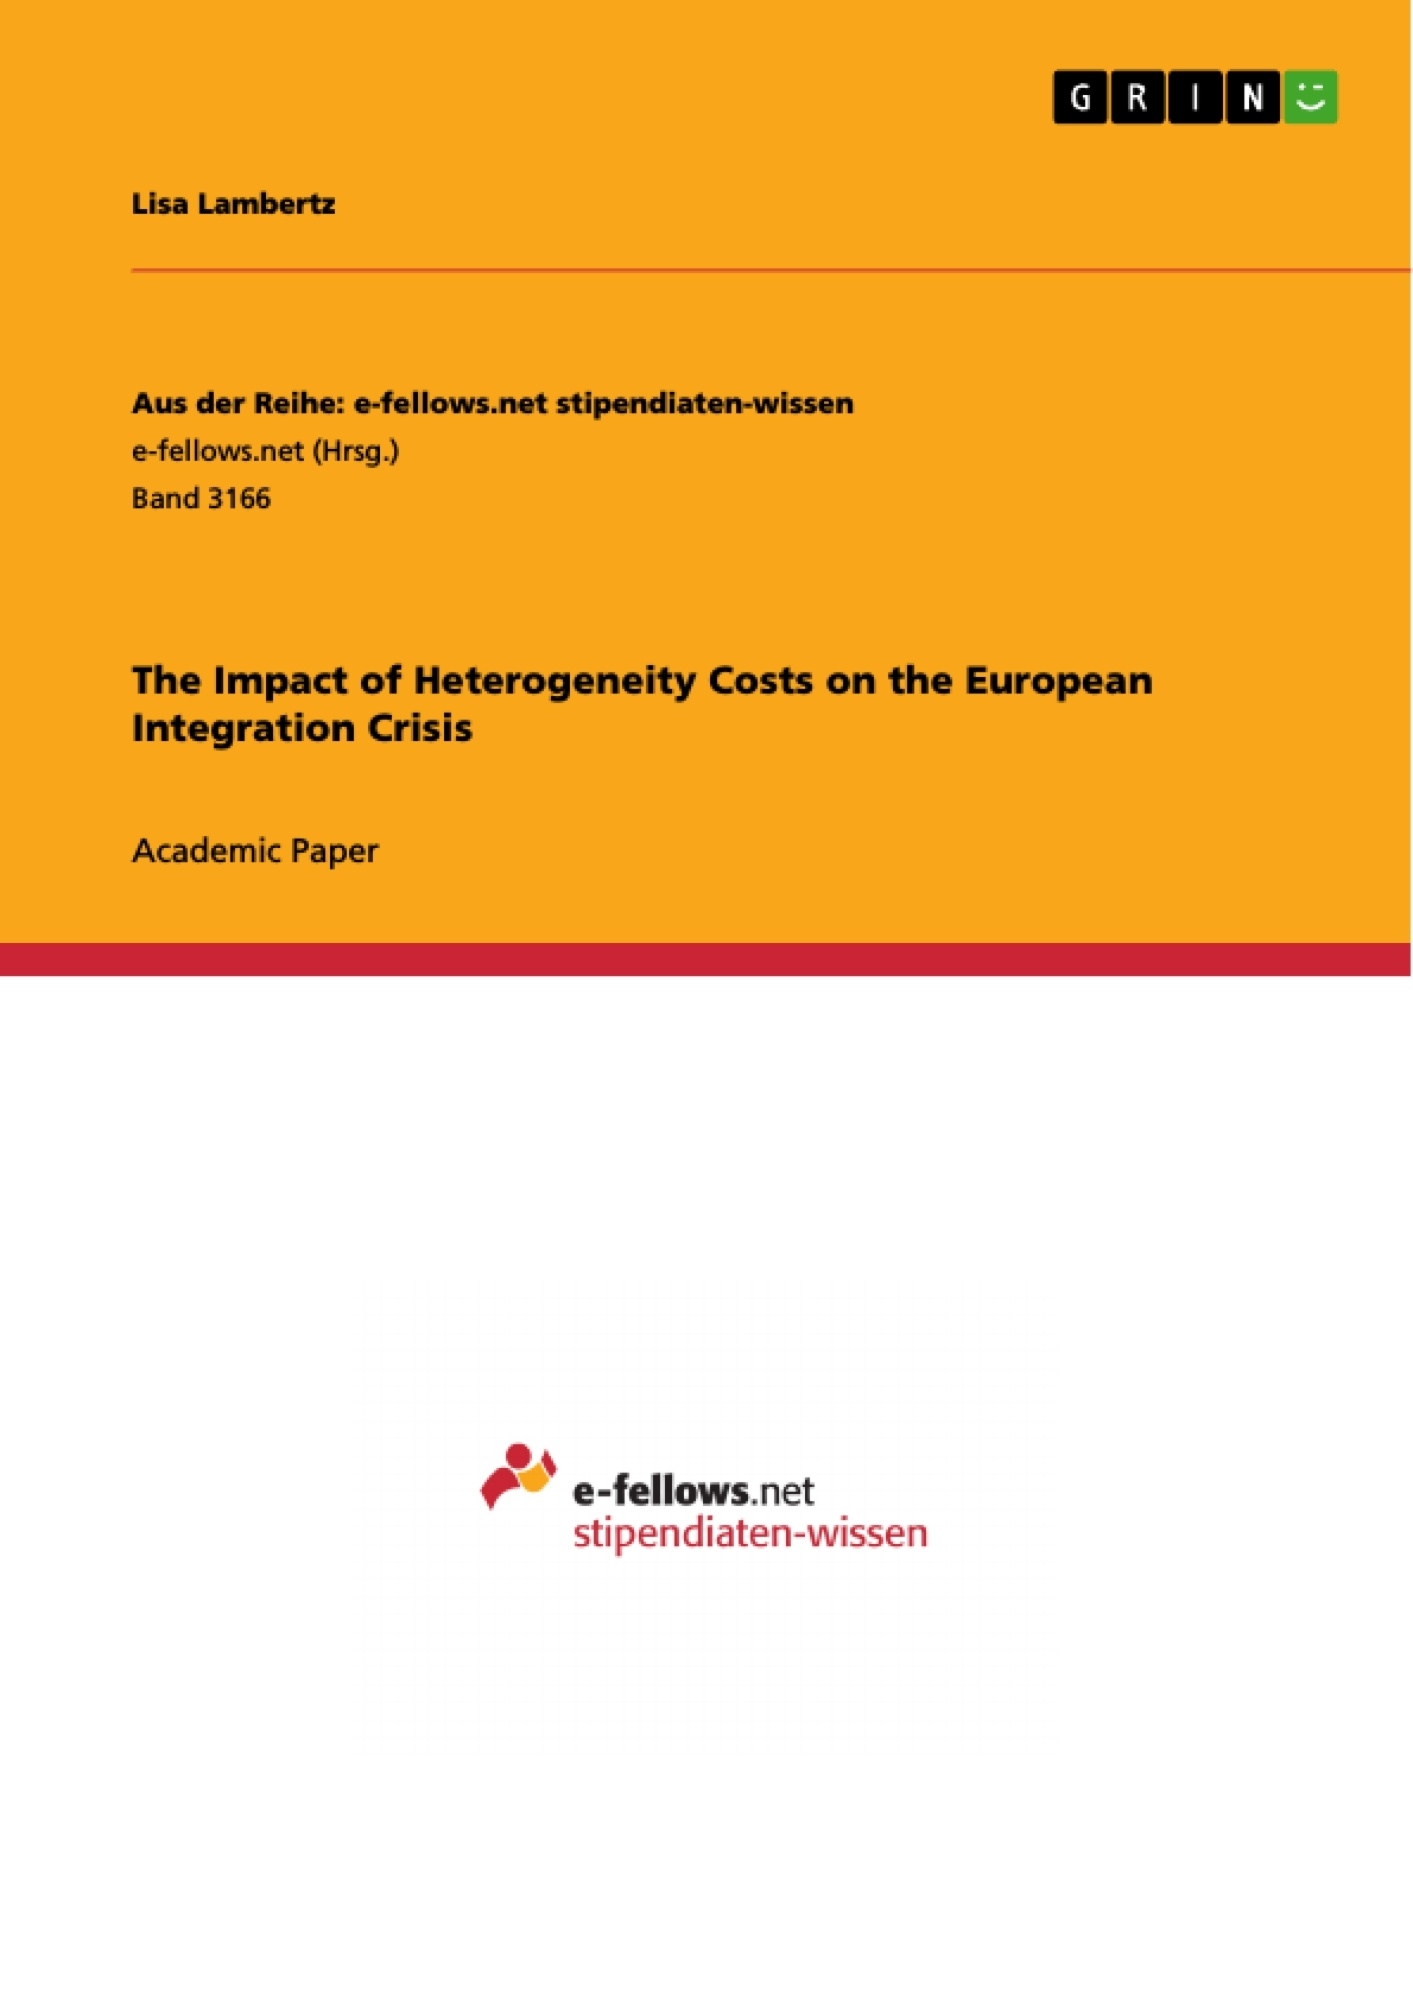 Title: The Impact of Heterogeneity Costs on the European Integration Crisis